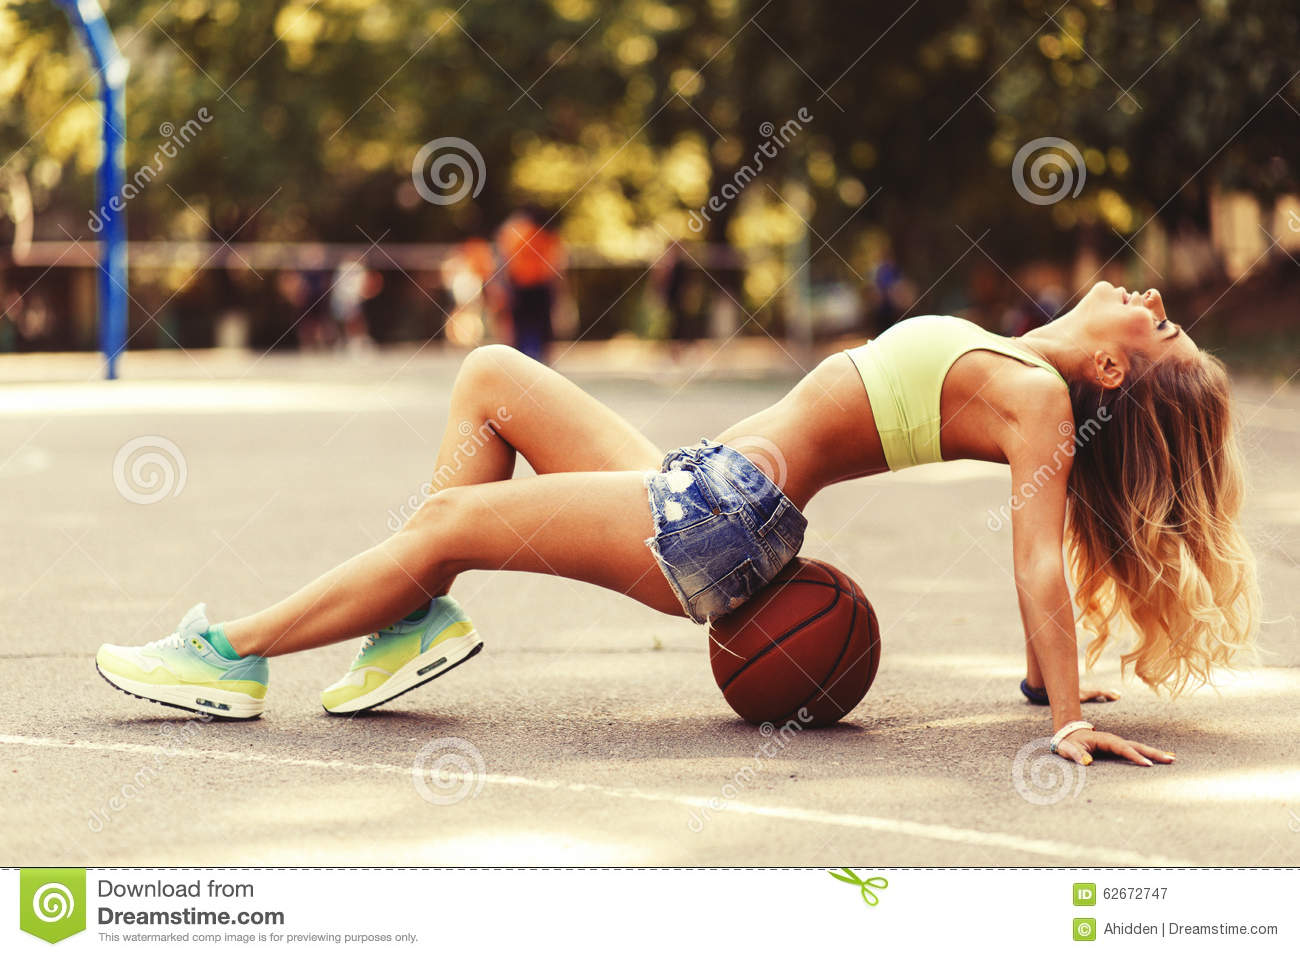 girls Sexy tumblr basketball